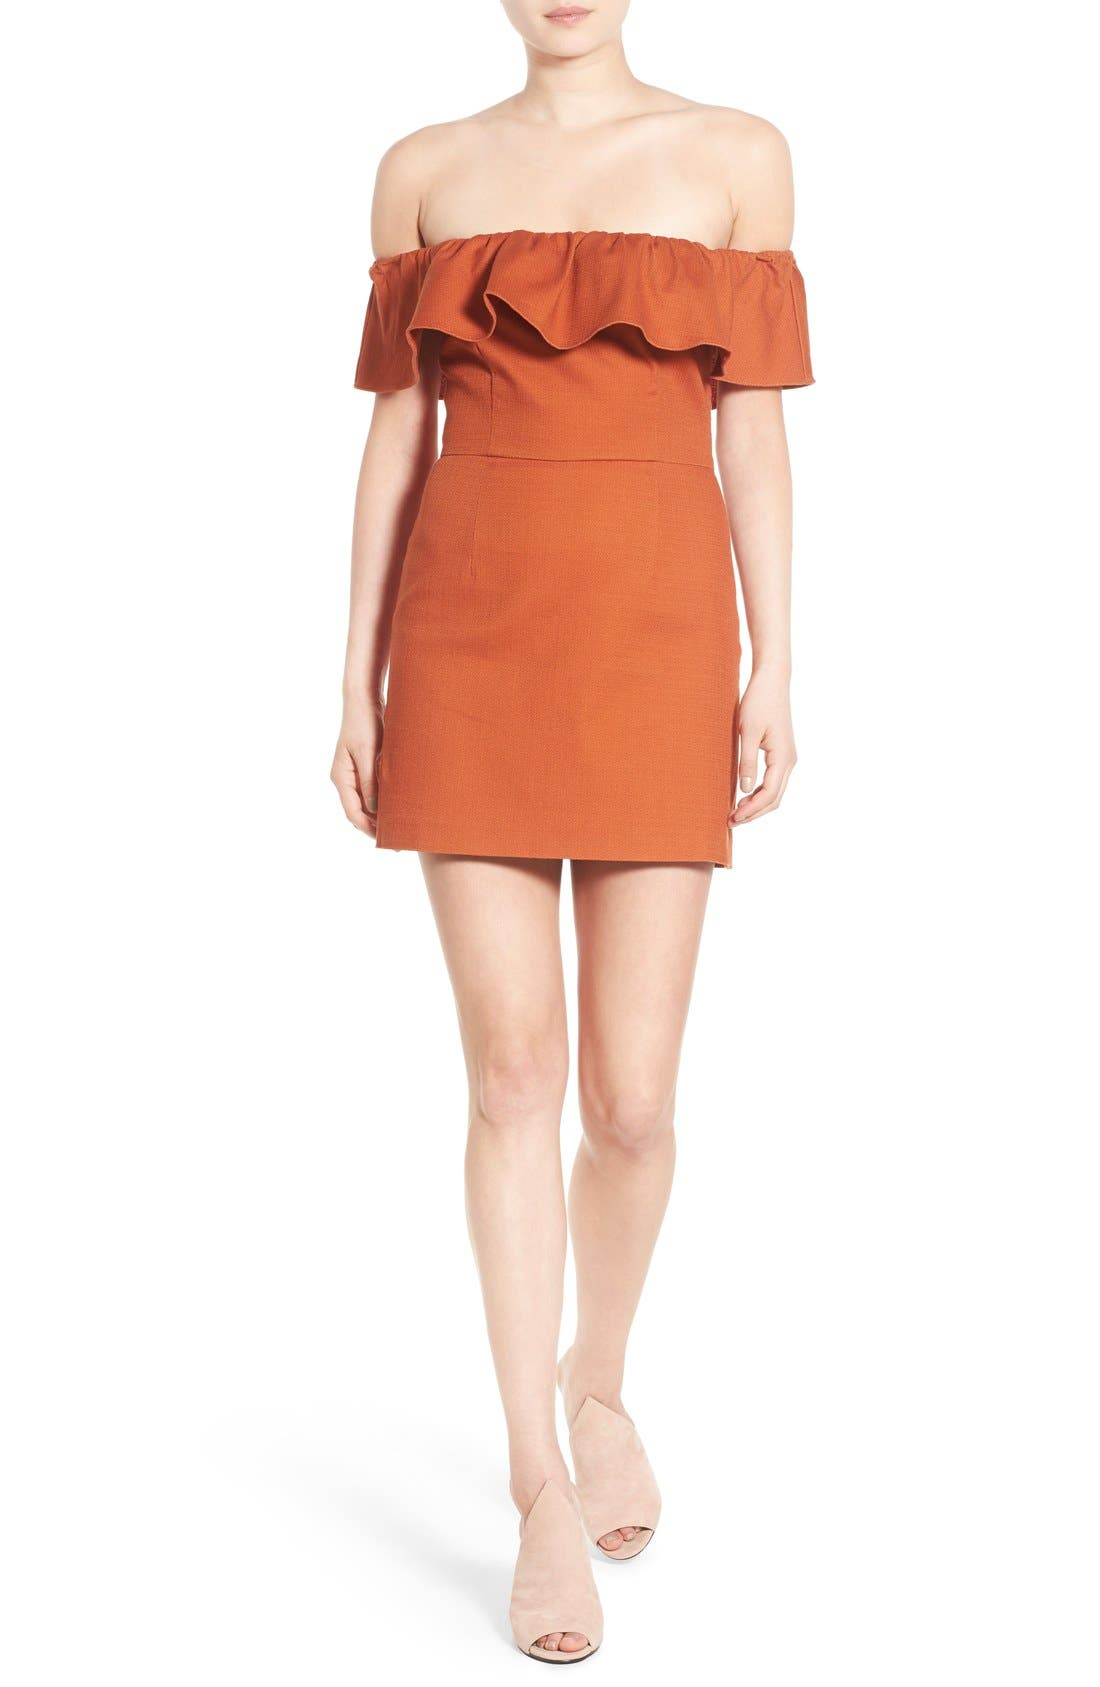 Alternate Image 1 Selected - KENDALL + KYLIE Ruffle Off the Shoulder Minidress